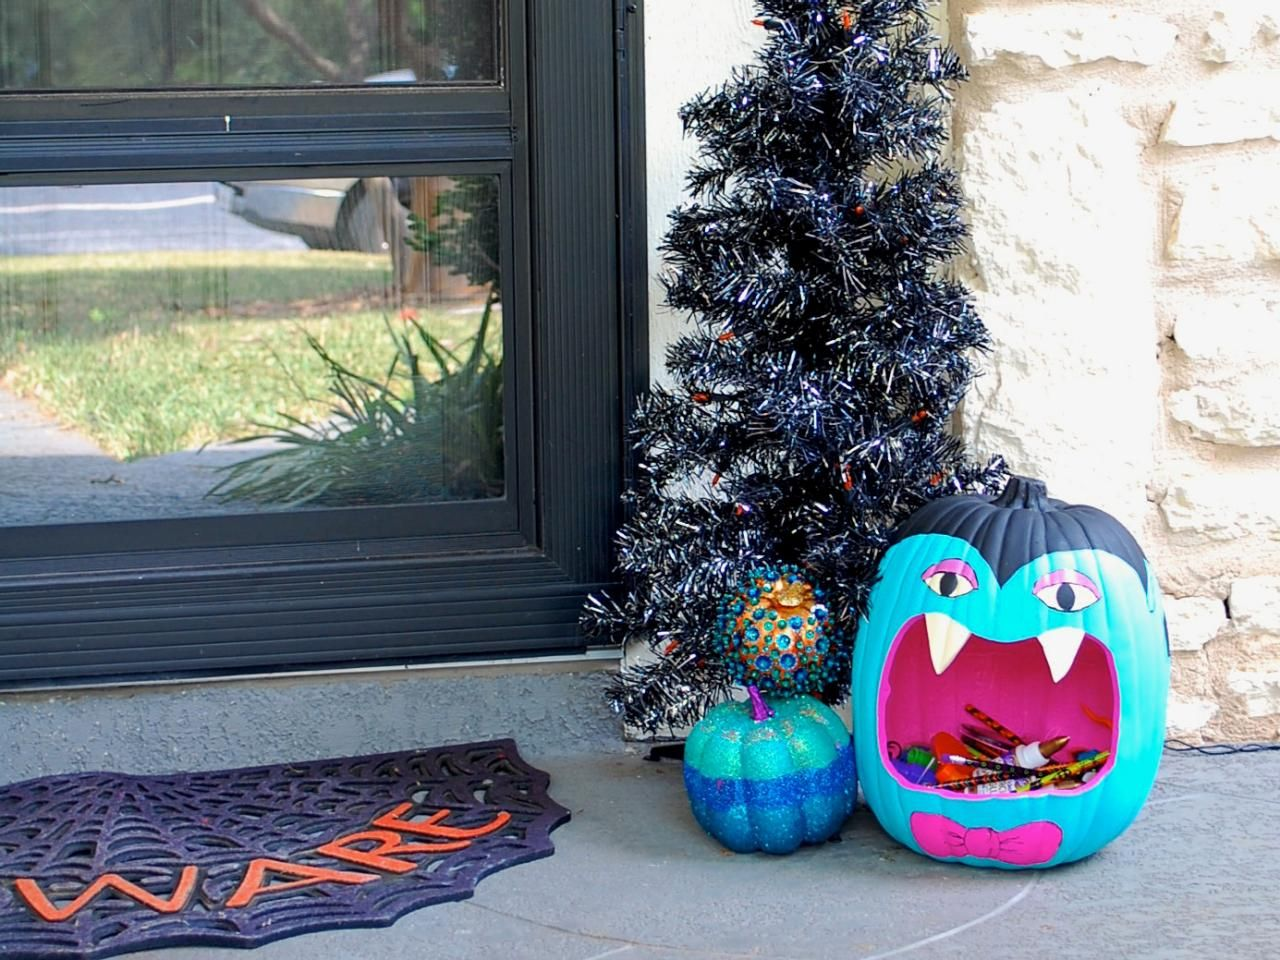 Halloween Decorations DIY Halloween, Teal pumpkin and Whimsical - Cheap Diy Halloween Decorations